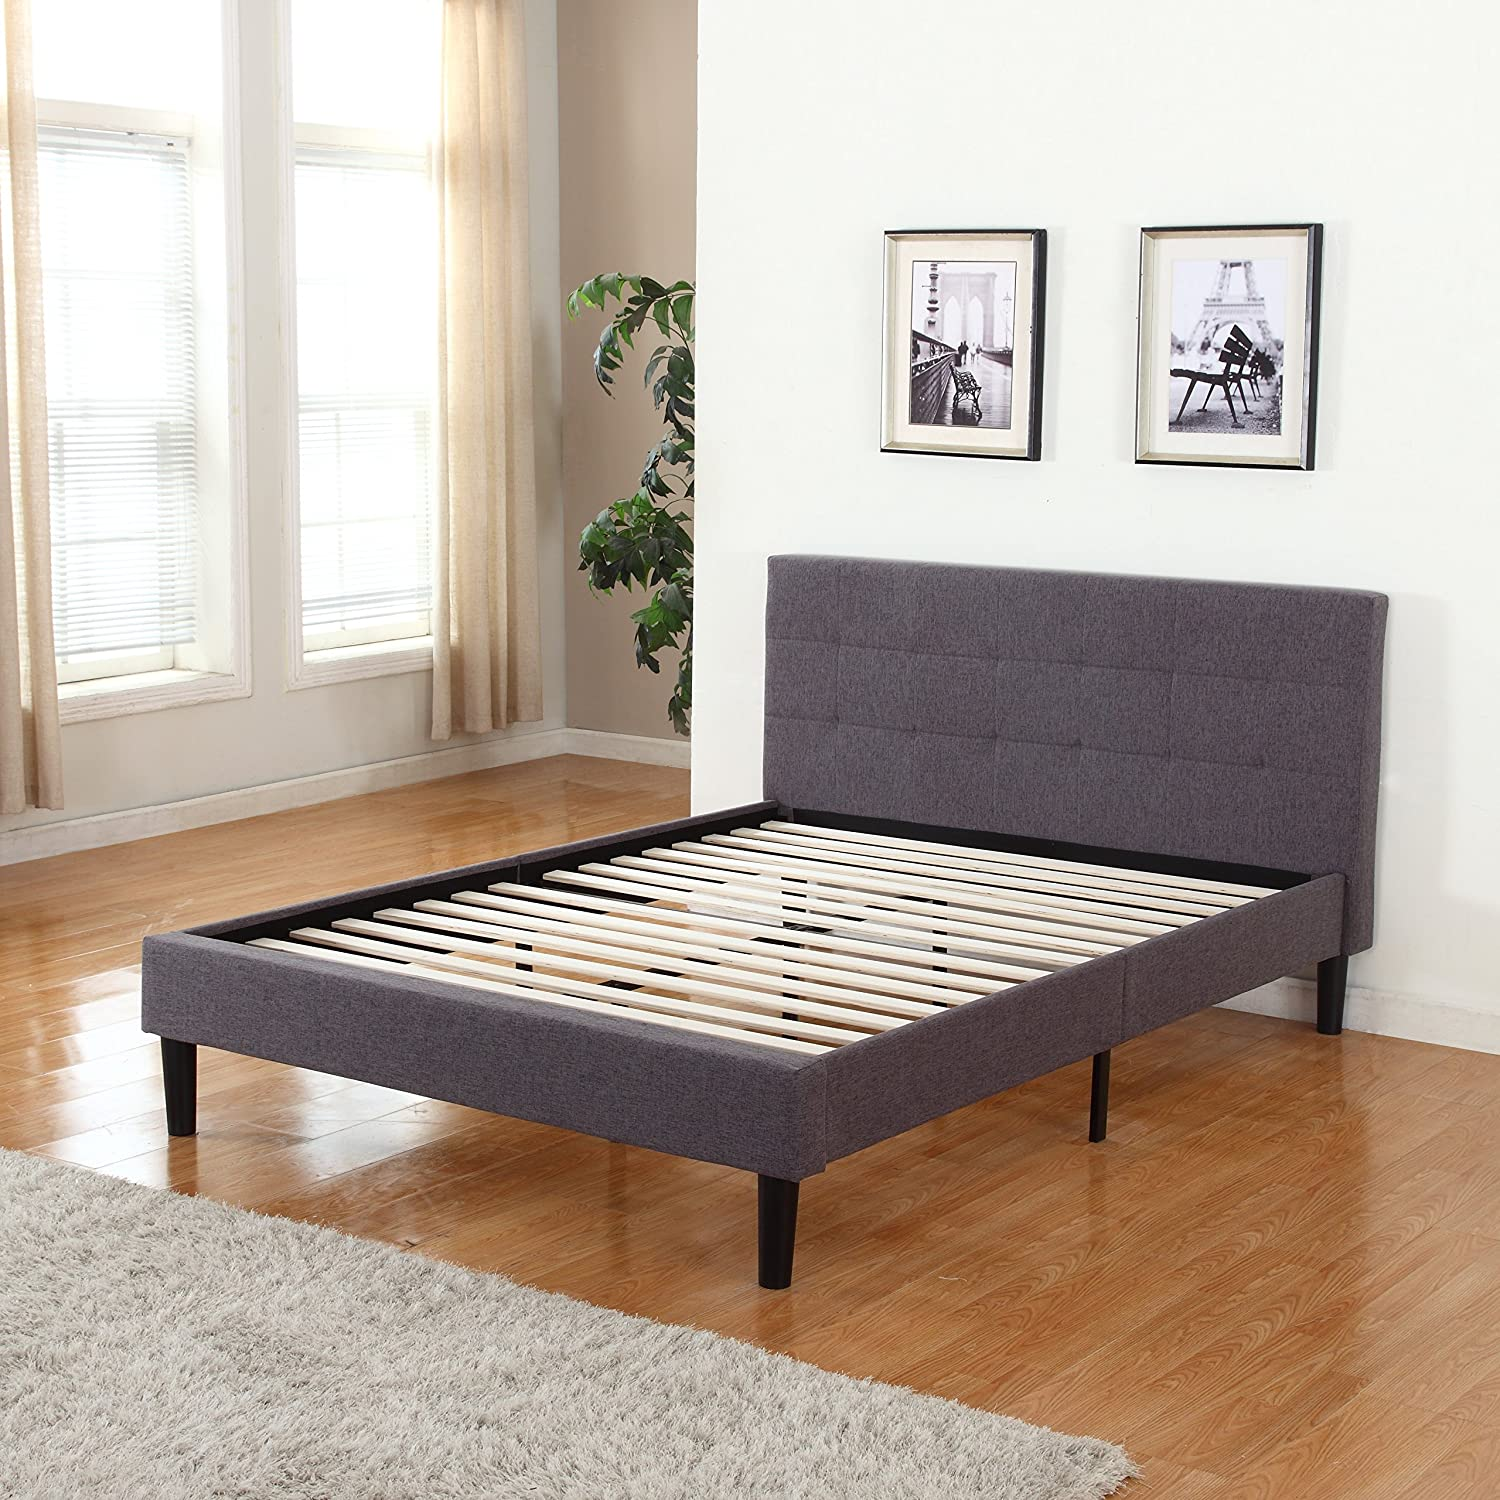 amazoncom divano roma furniture tufted grey platform queen bed  - amazoncom divano roma furniture tufted grey platform queen bed frame withwooden slats kitchen  dining